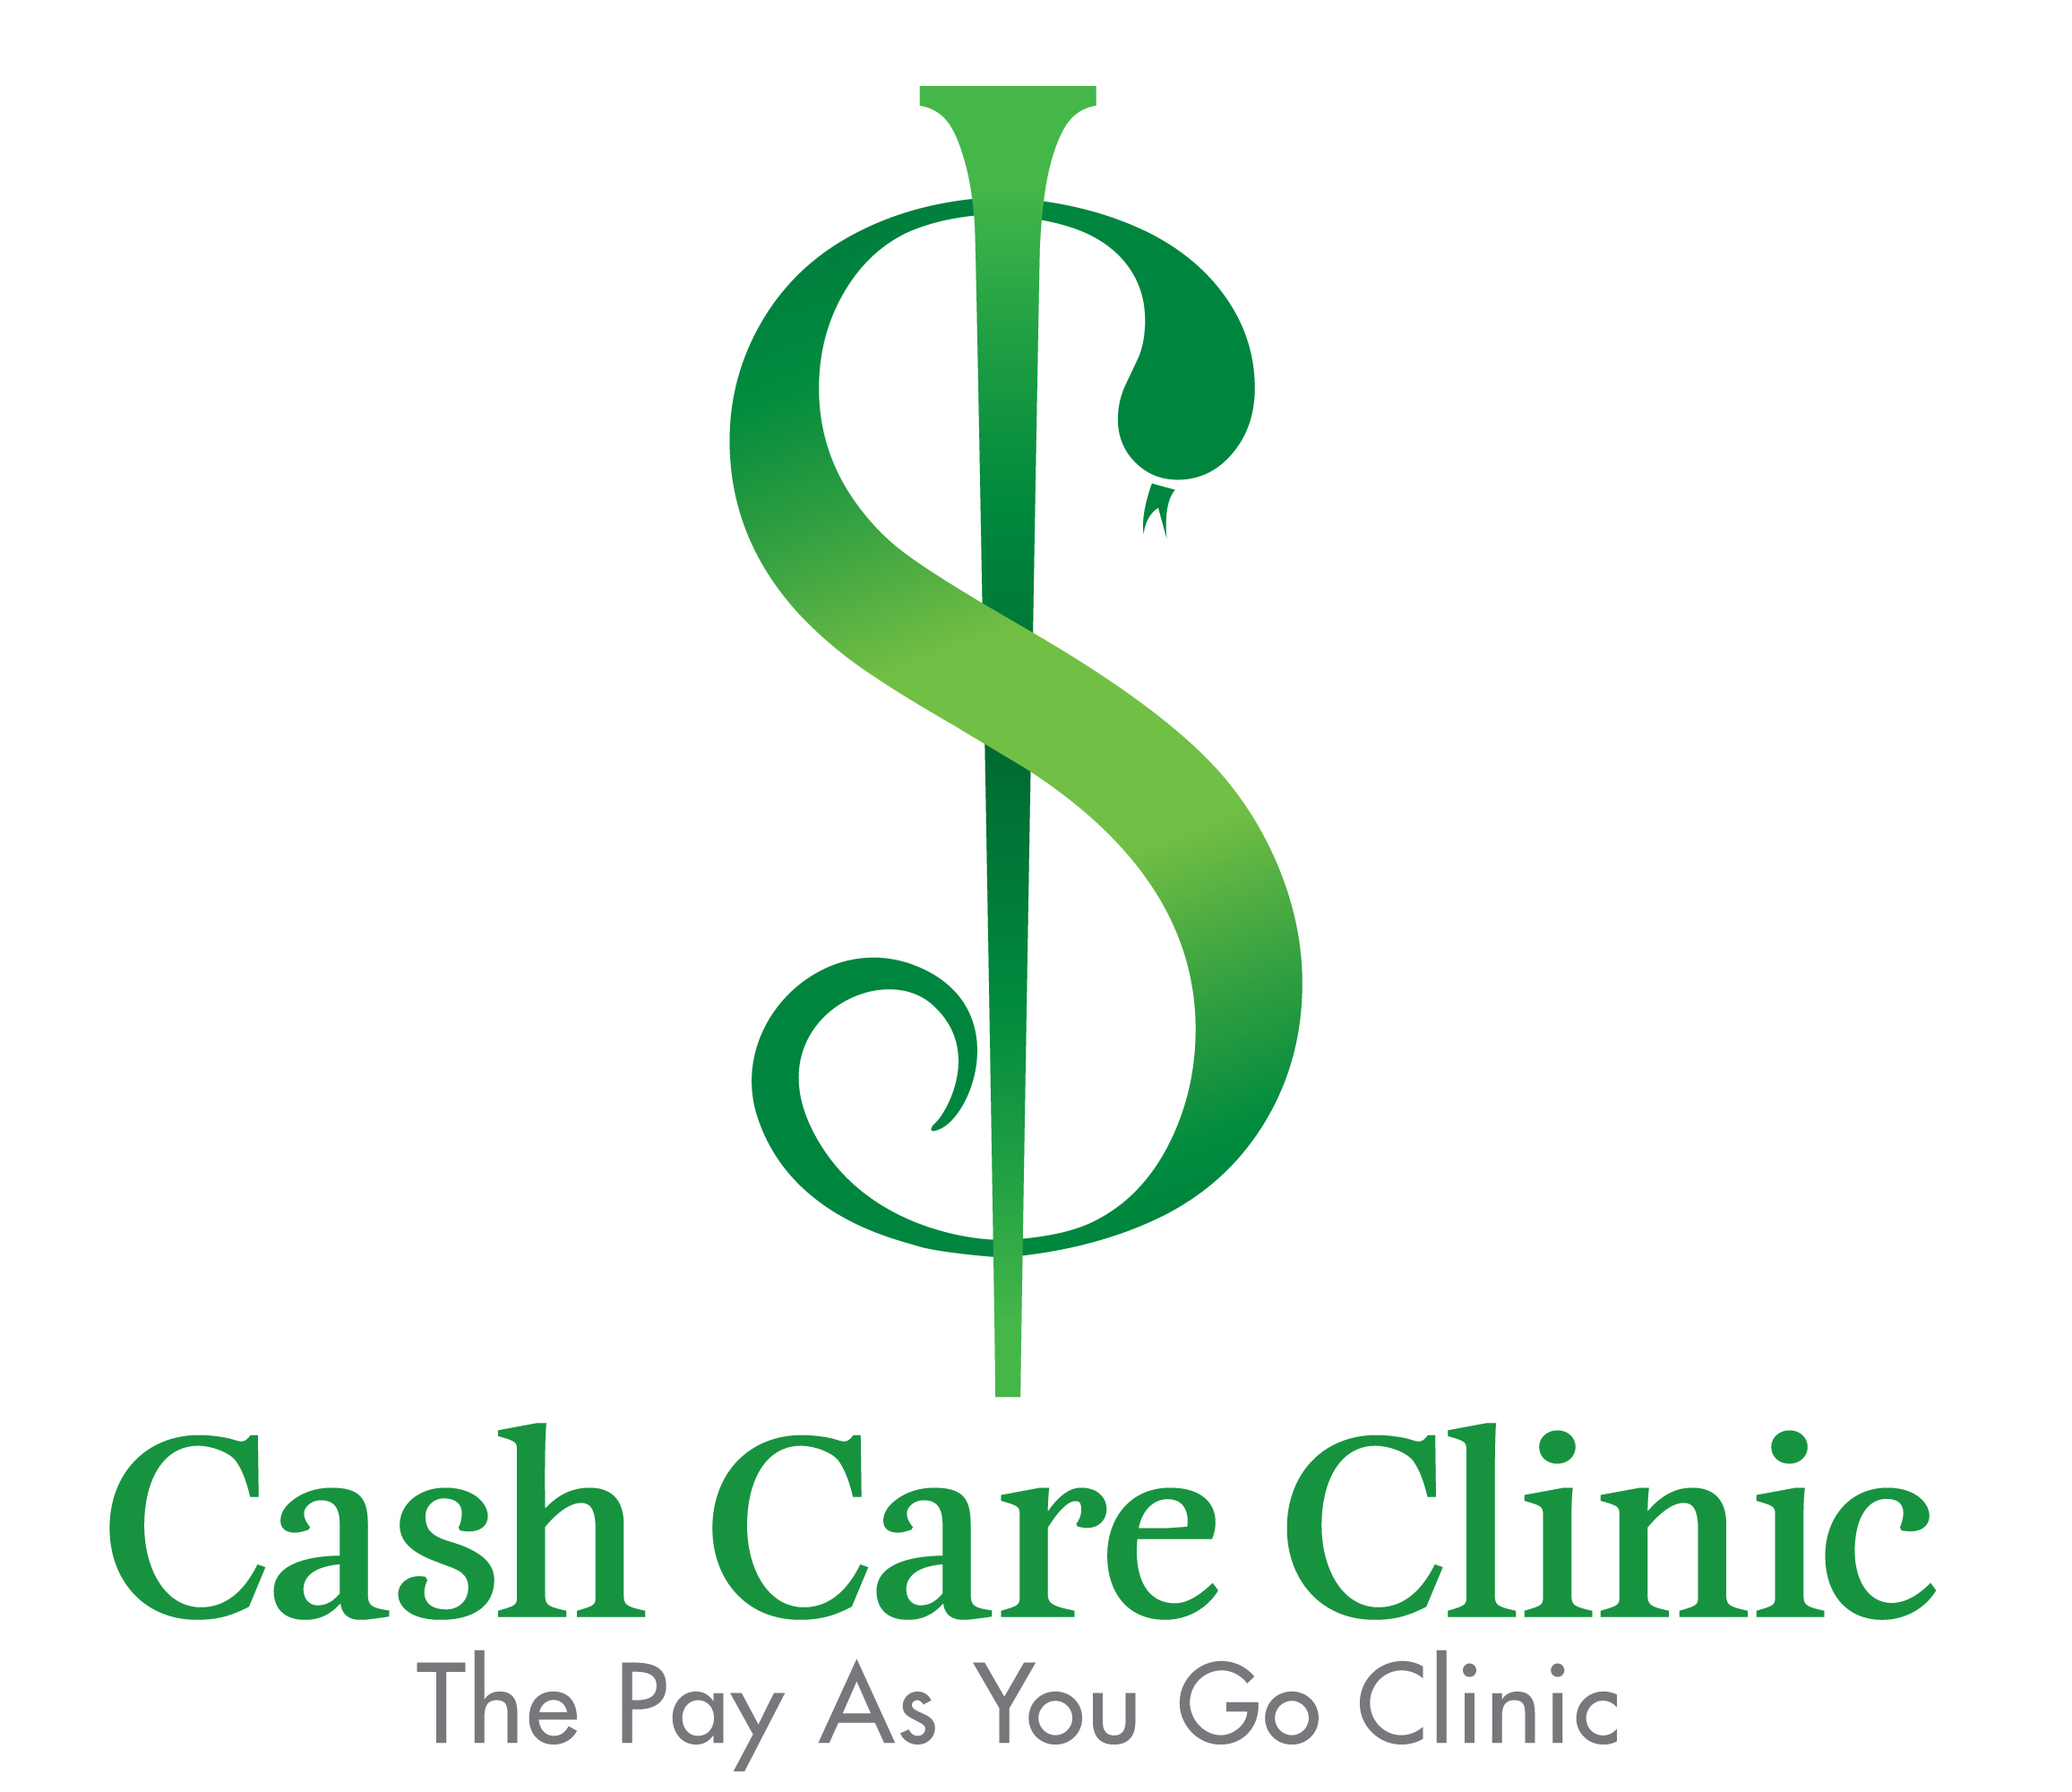 Logo design for cash care clinic by yo yo design 42361 logo design by yo yo for logo design for clinic that only accepts cash for care buycottarizona Images